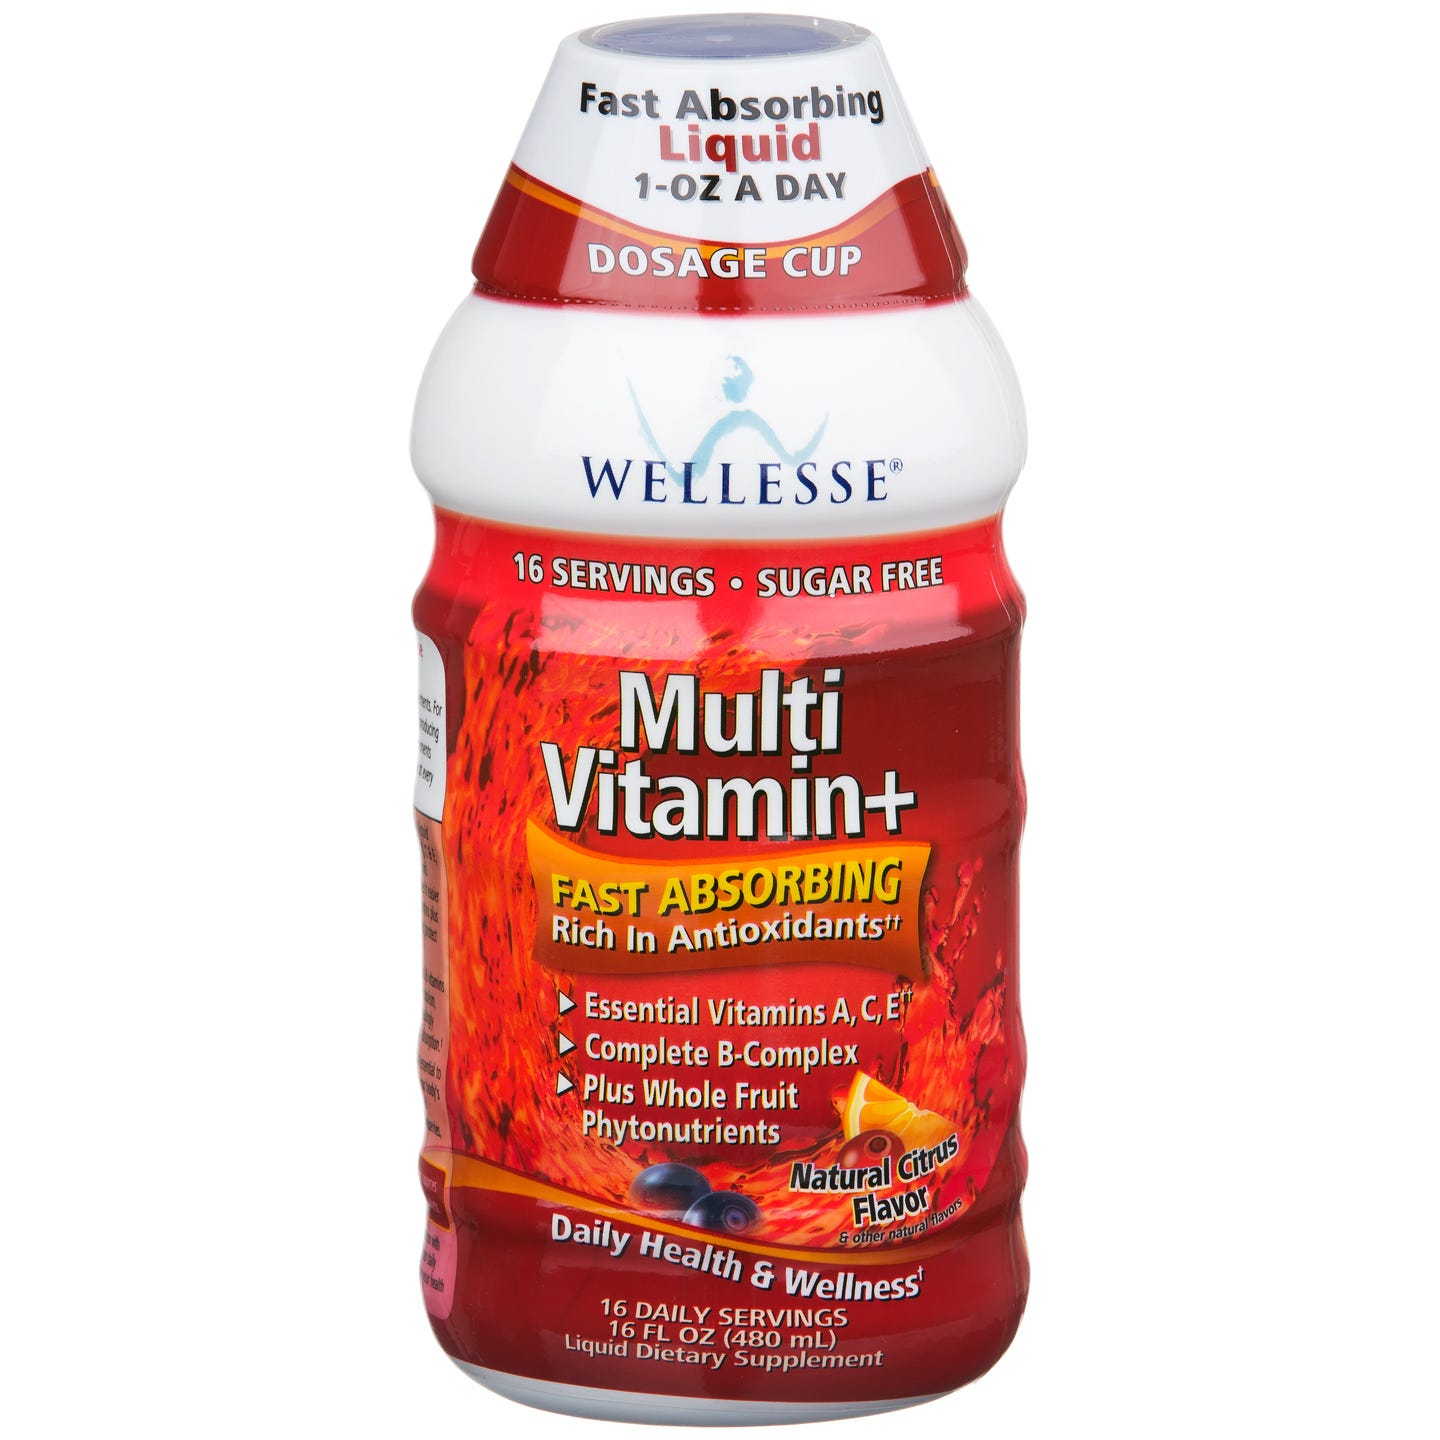 Liquid Multivitamin+ Natural Citrus 16 fl oz, Wellesse - Rapid Diet Weight Loss Products Shop